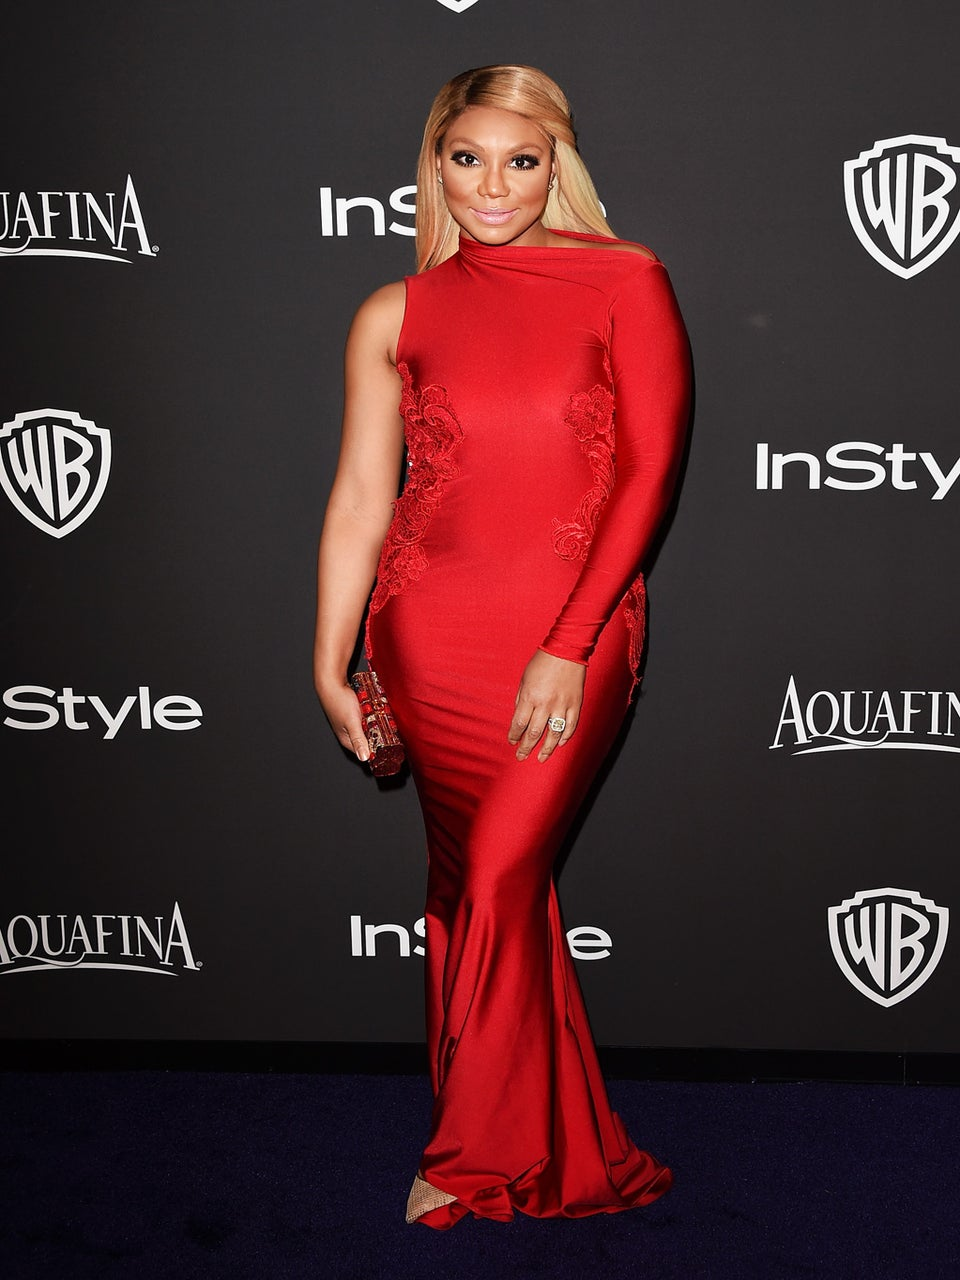 Tamar Braxton Opens Up About Abusive Relationship and Finding the Strength to Leave